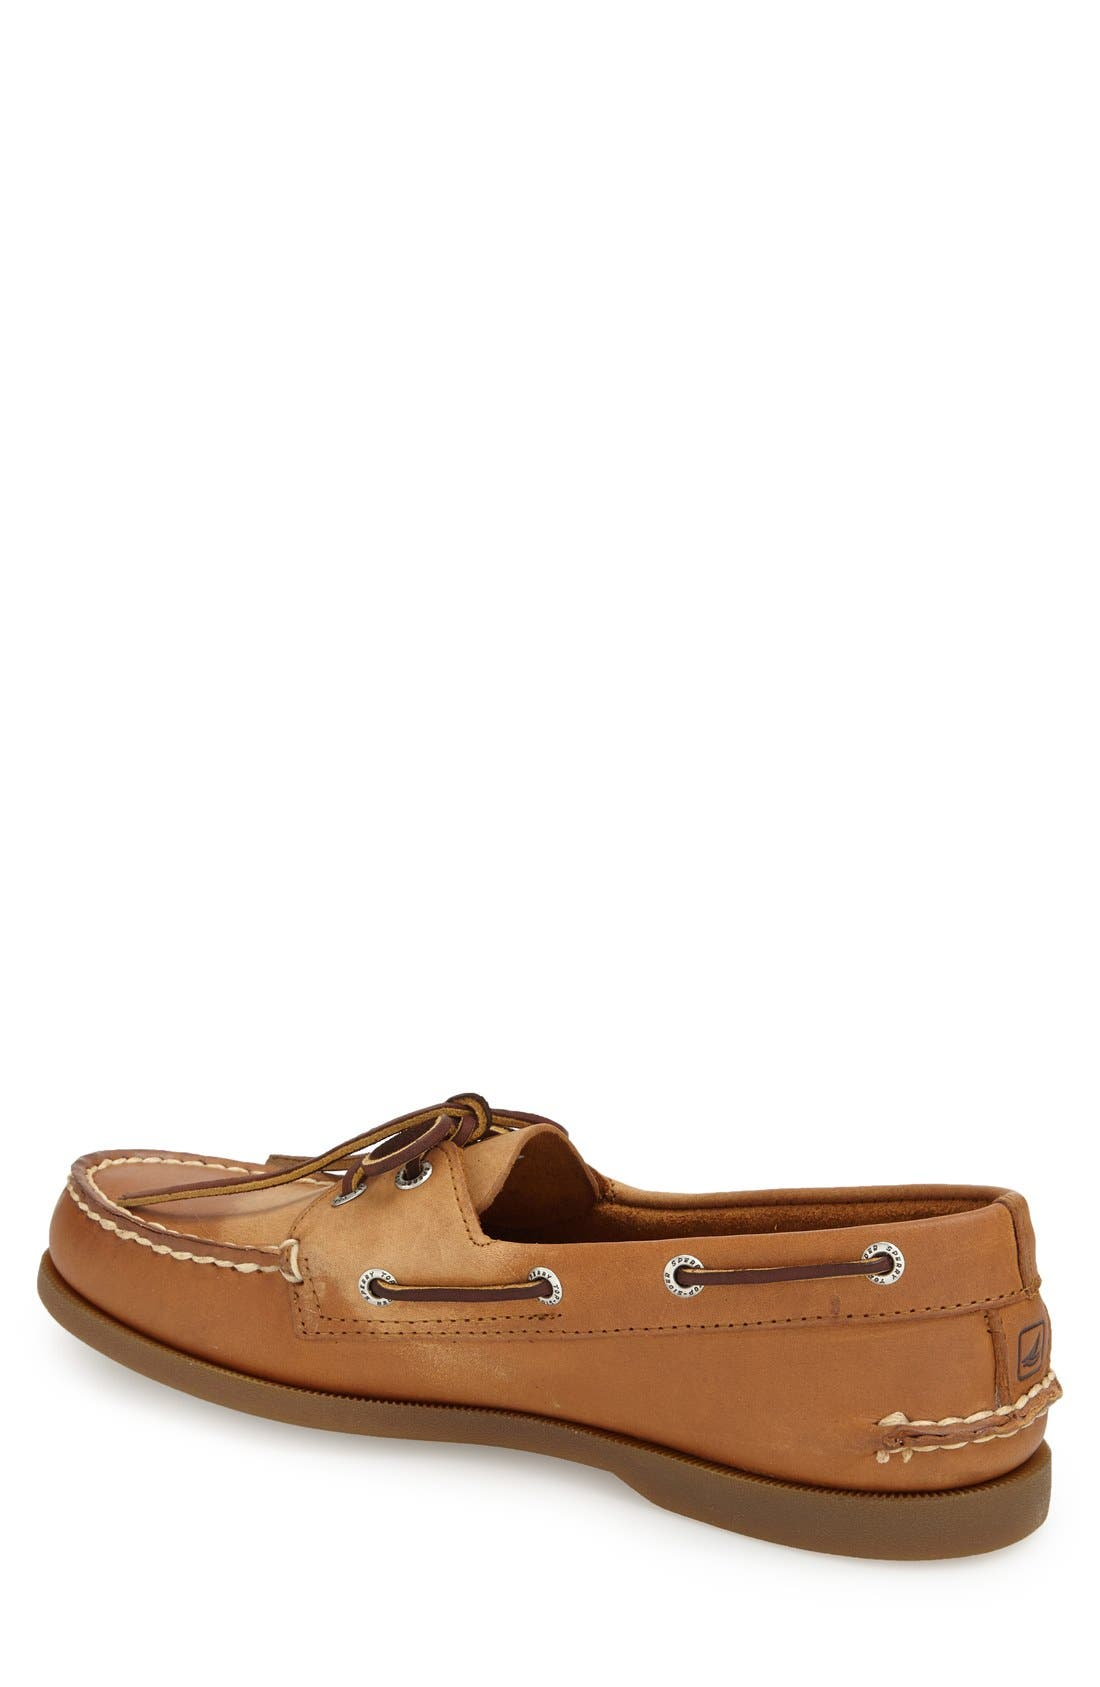 SPERRY, 'Authentic Original' Boat Shoe, Alternate thumbnail 3, color, 205